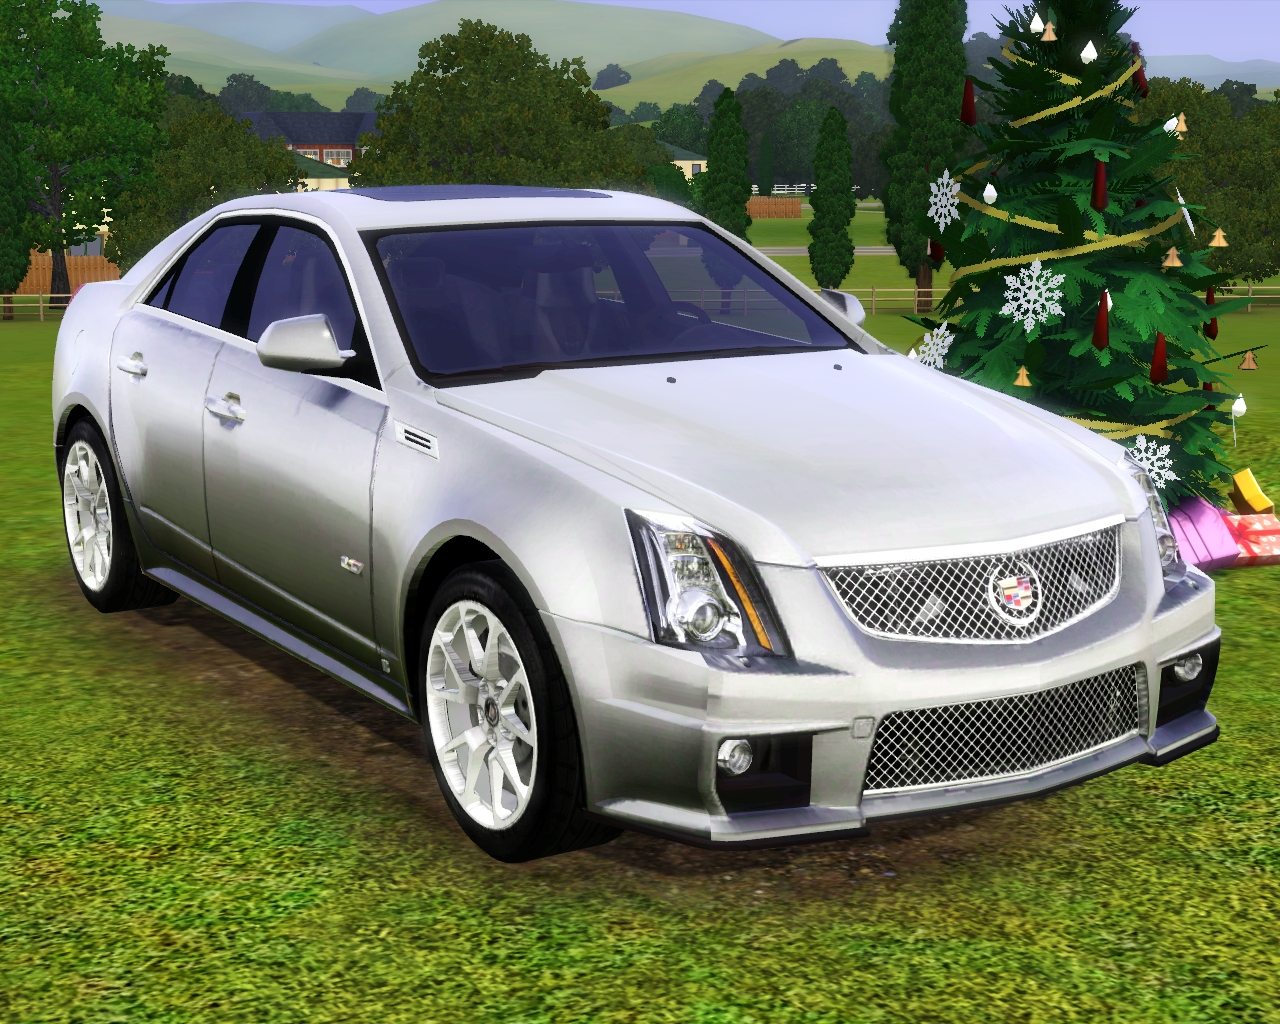 2011 Cadillac CTS-V by Fresh-Prince